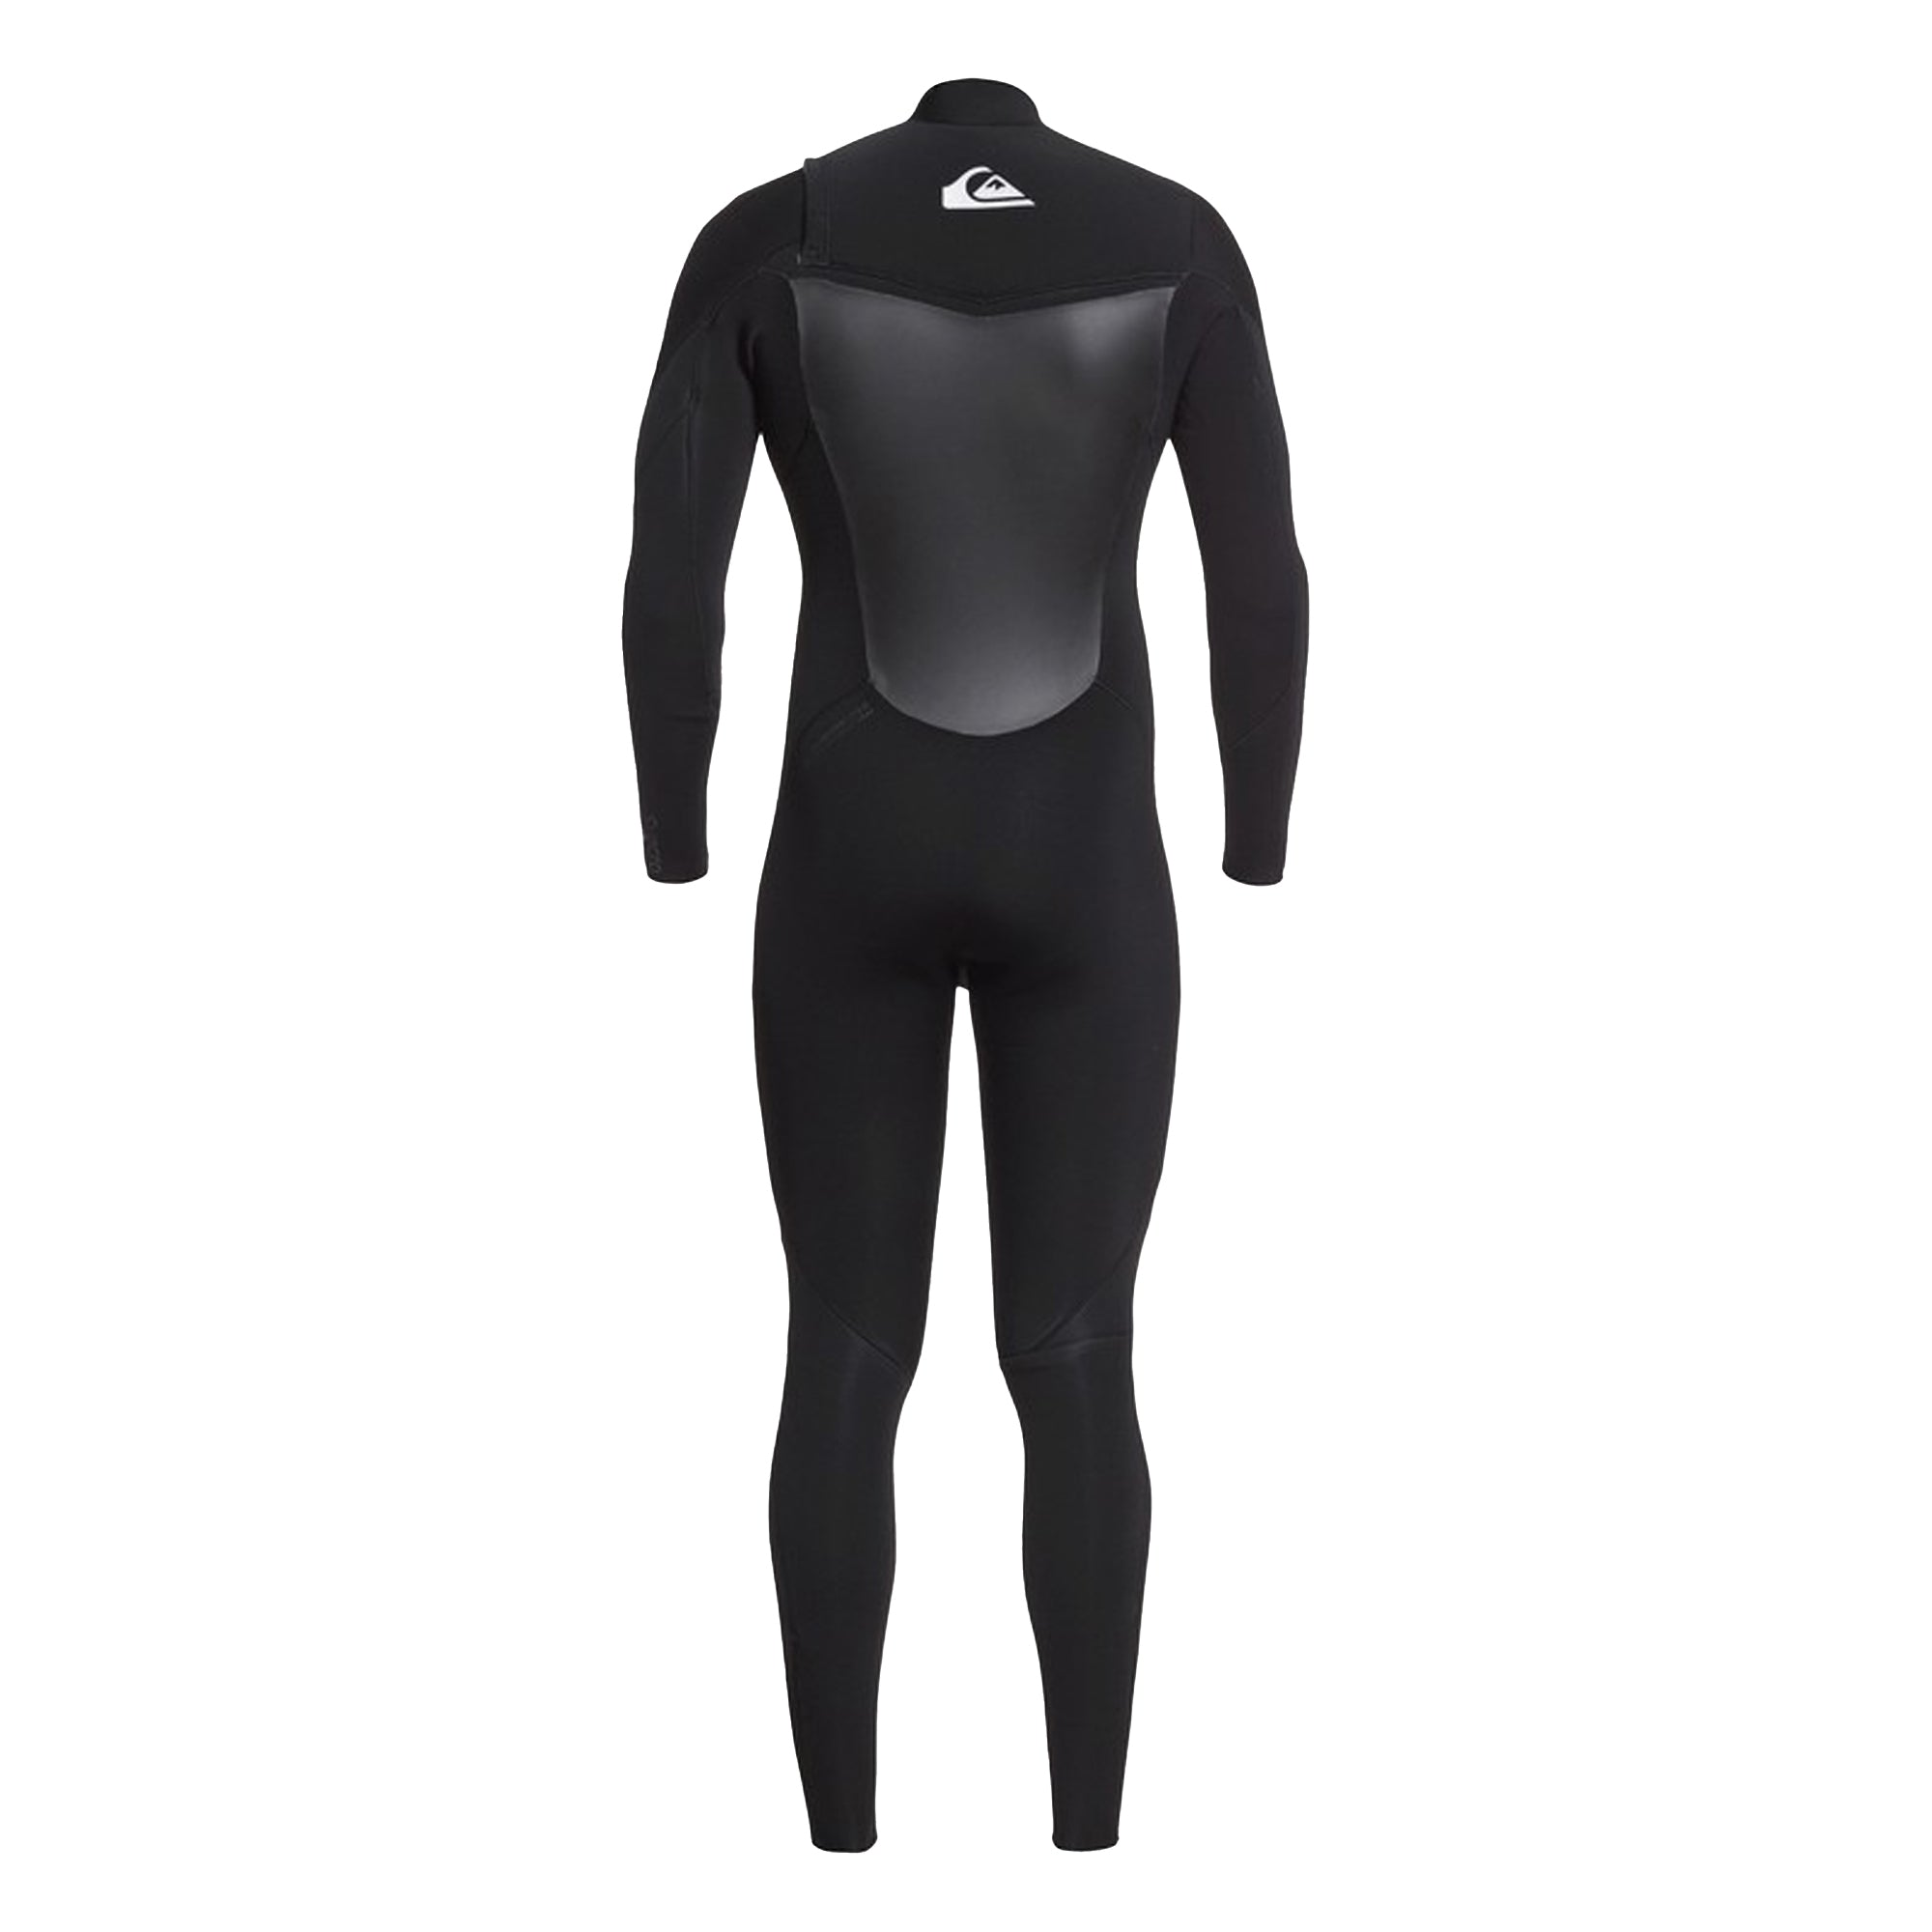 Quiksilver Syncro 3/2 GBS Chest Zip Men's L/S Wetsuit